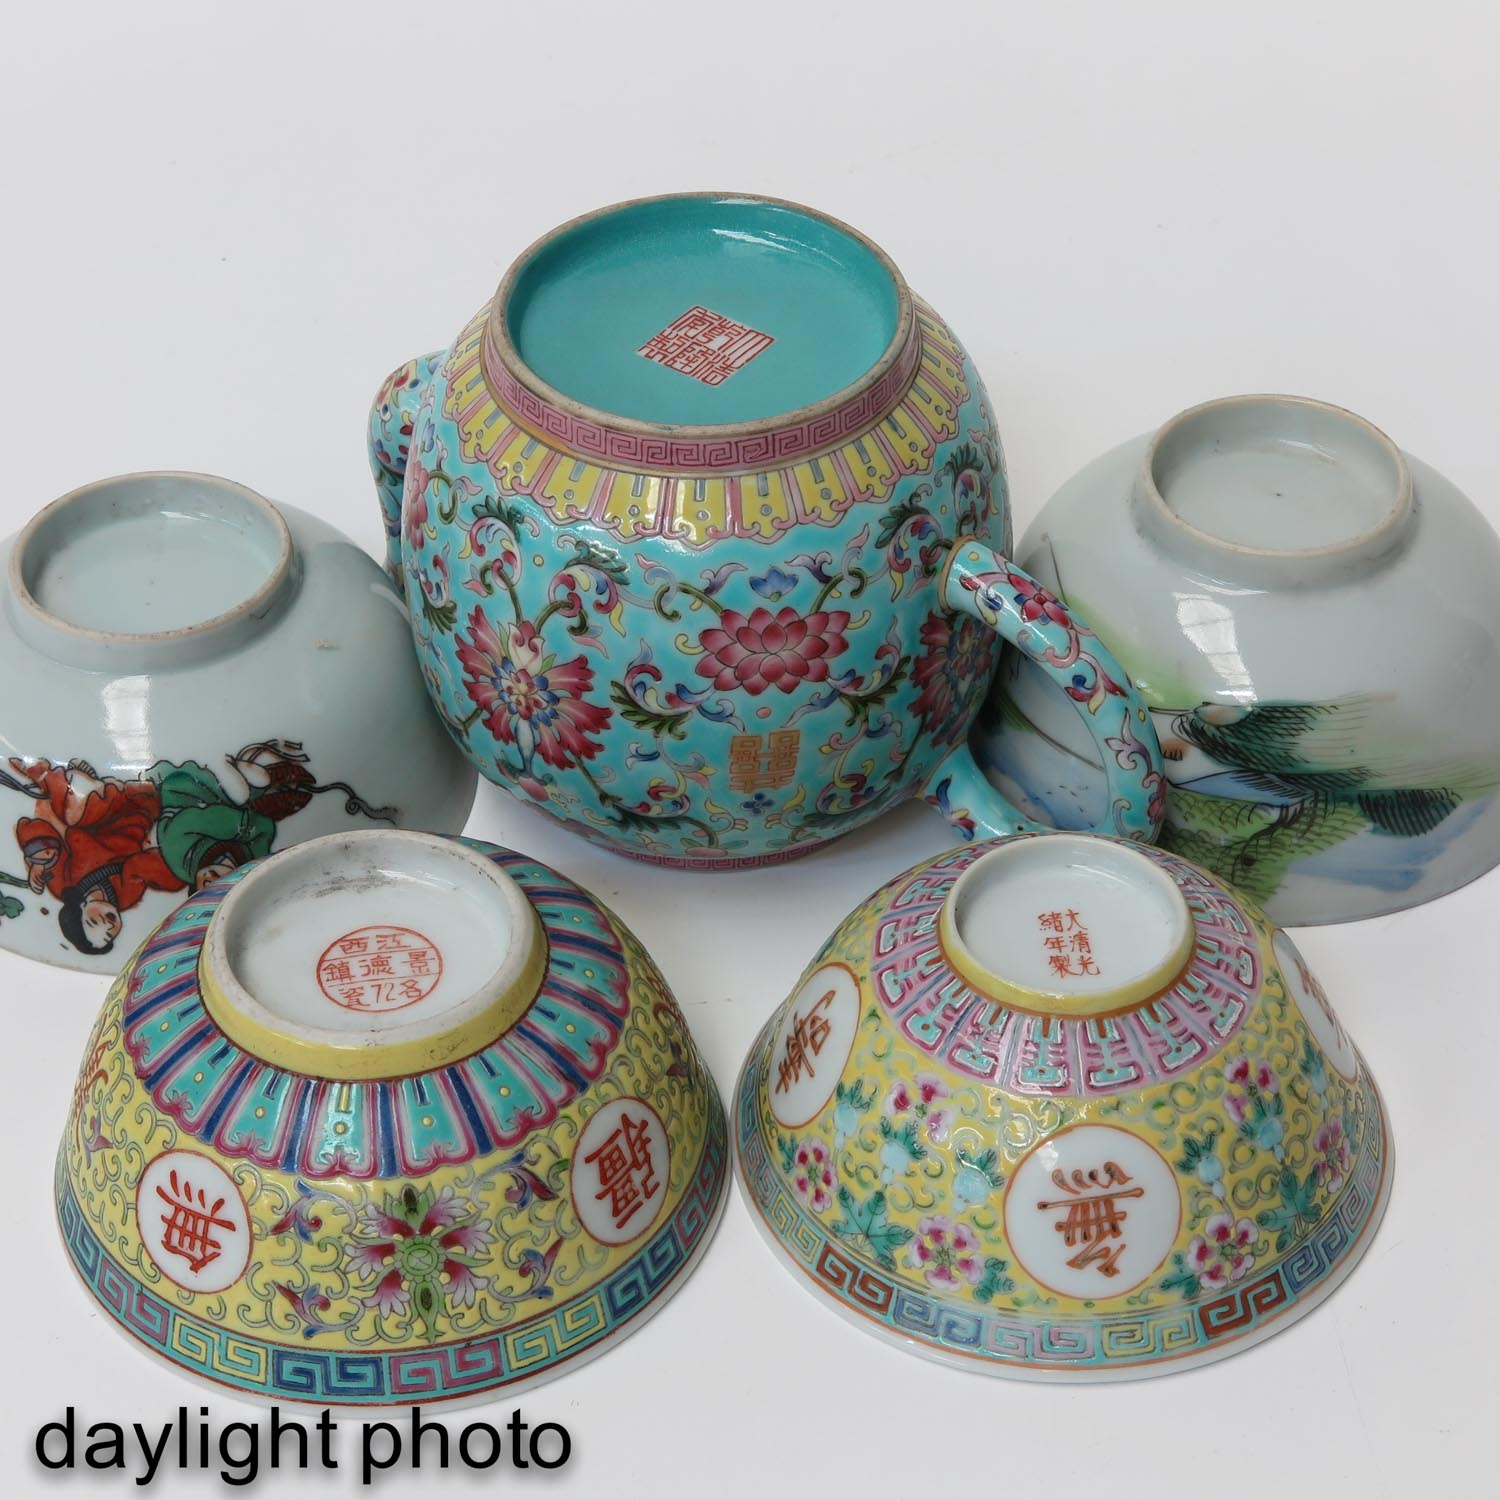 A Collection of Chinese Porcelain - Image 8 of 10